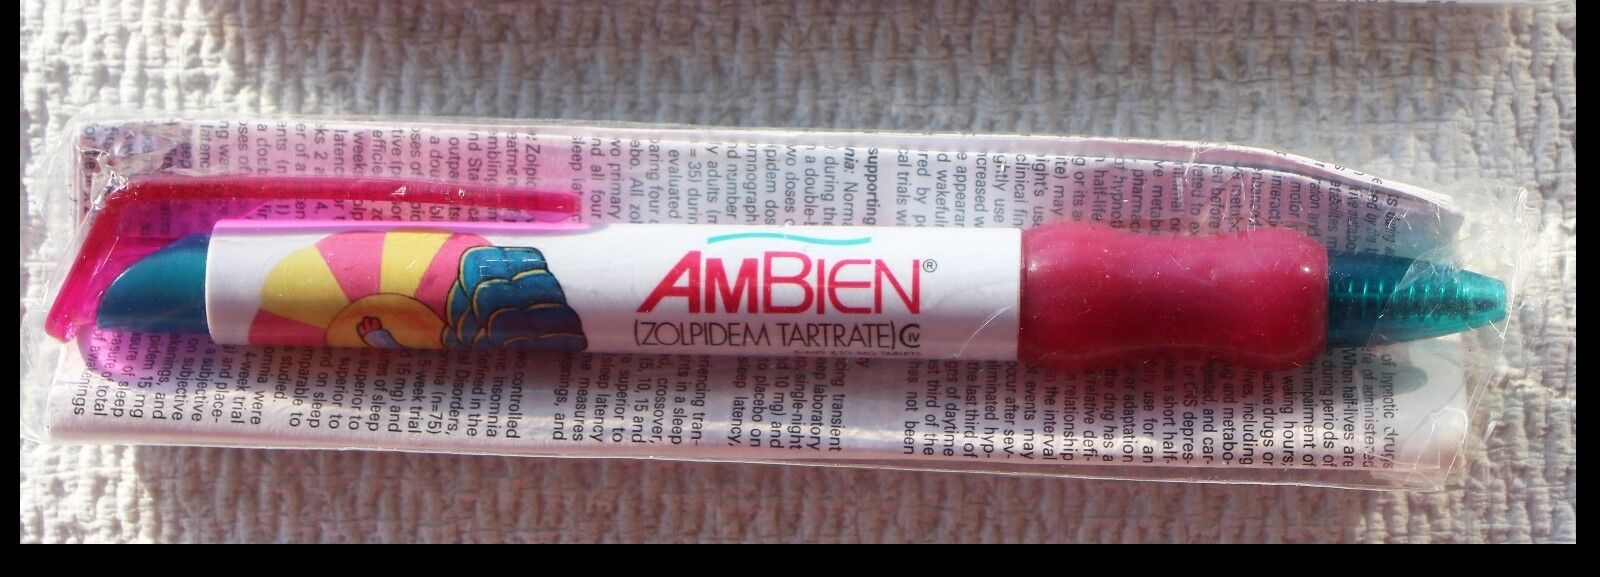 Drug Rep Pens 1 Ambien Wide Body  White w/ Rose Color Grips  NIP Rare Pen 1